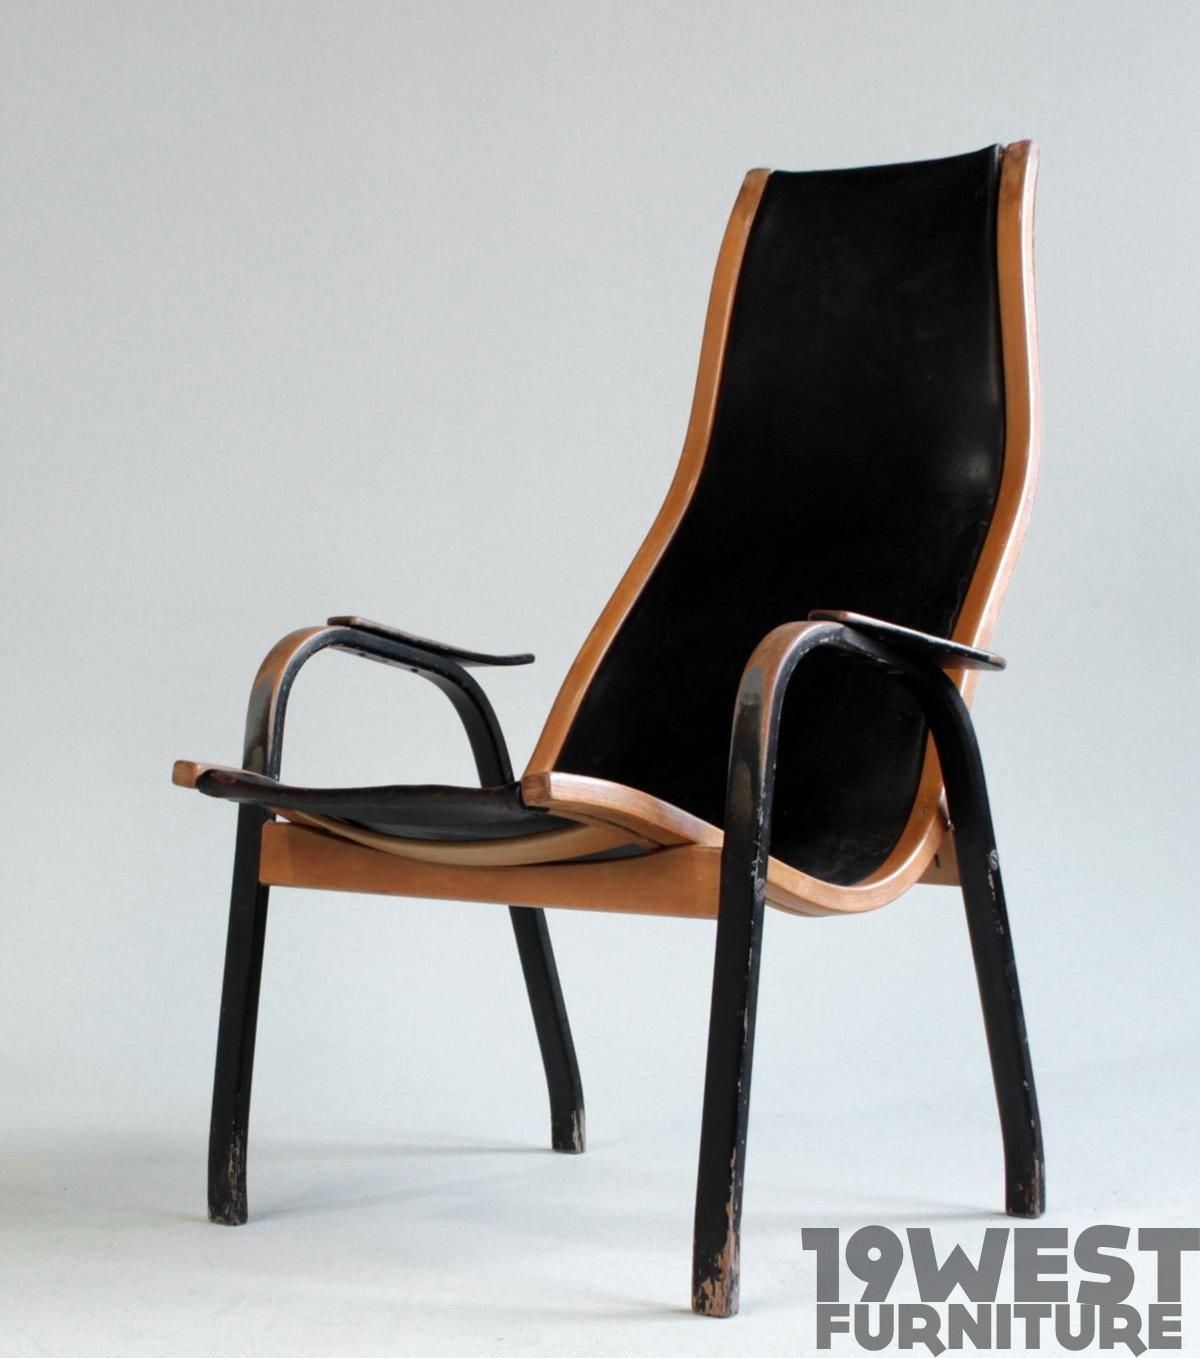 areaneo mid century modern easy chair 1950s scandinavian modern - Mid Century Modern Furniture Of The 1950s